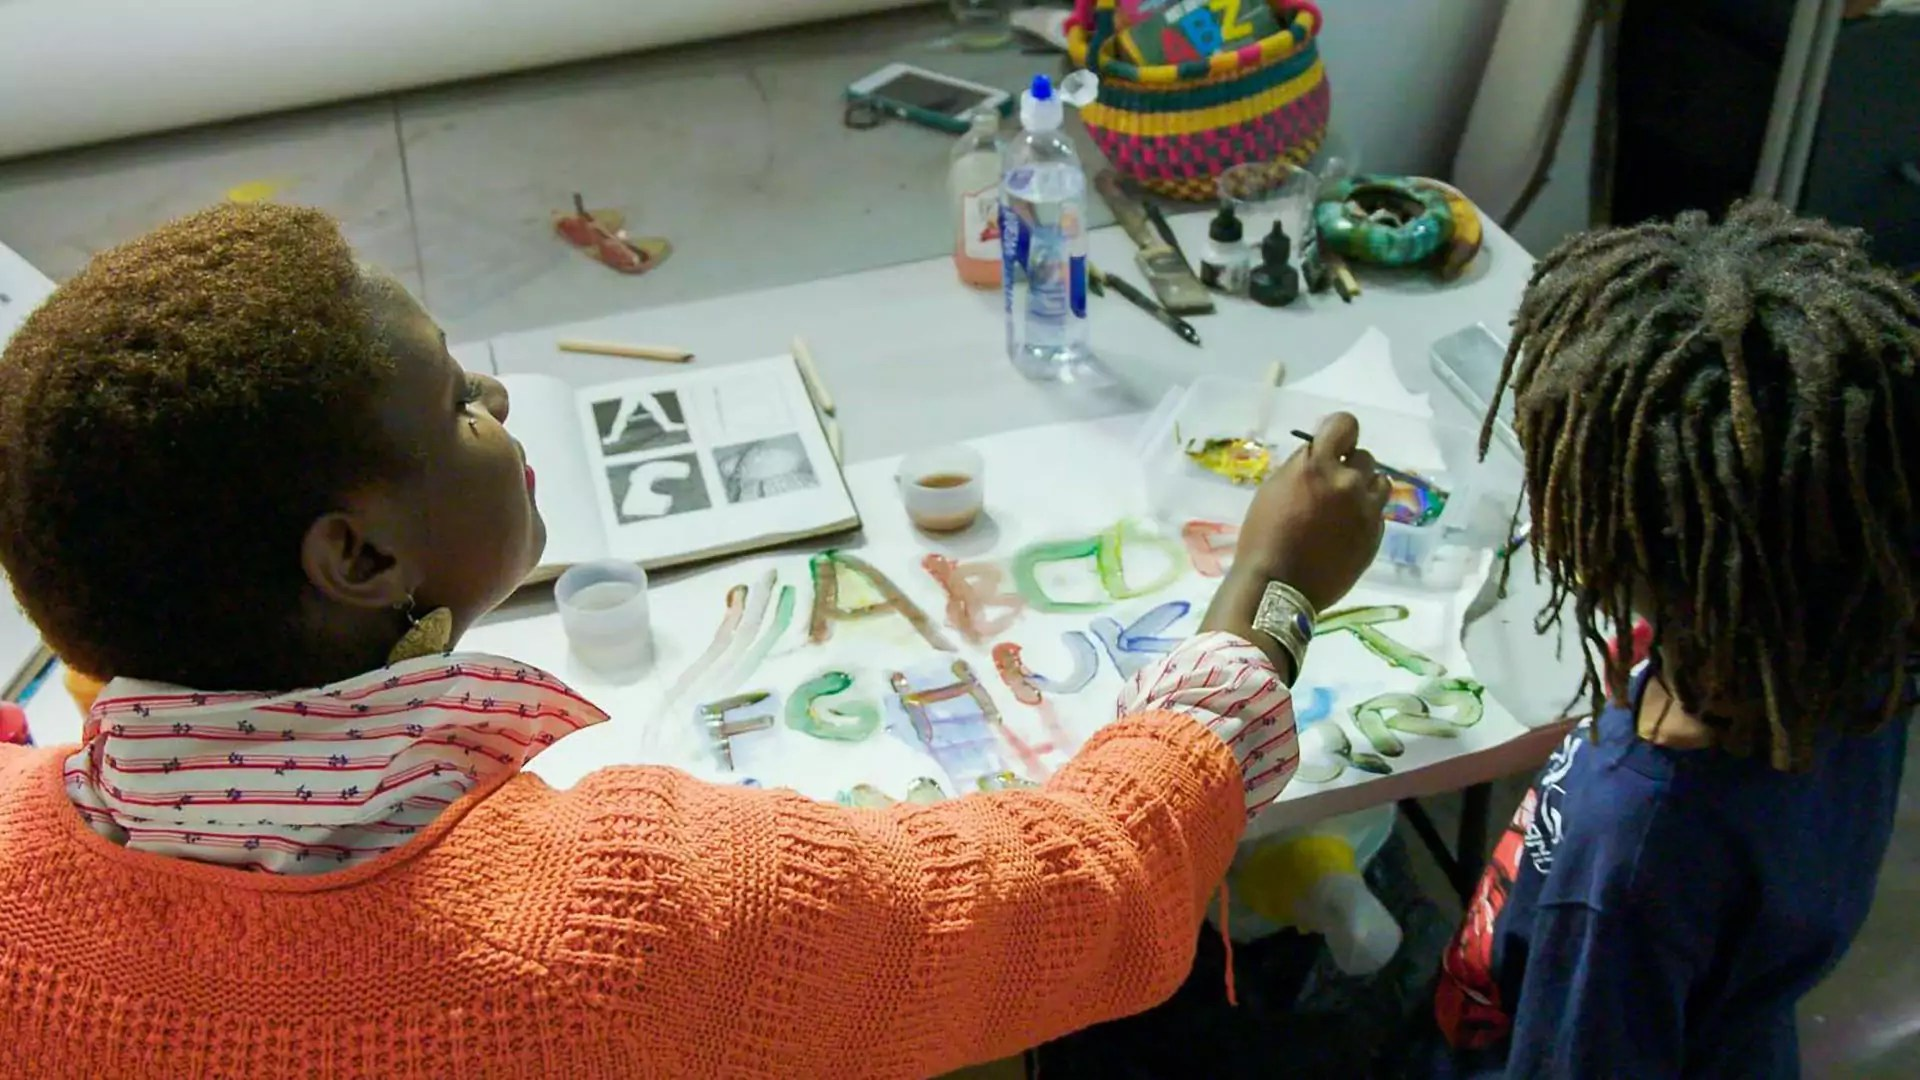 A person dips a brush into paint as a child watches next to them.